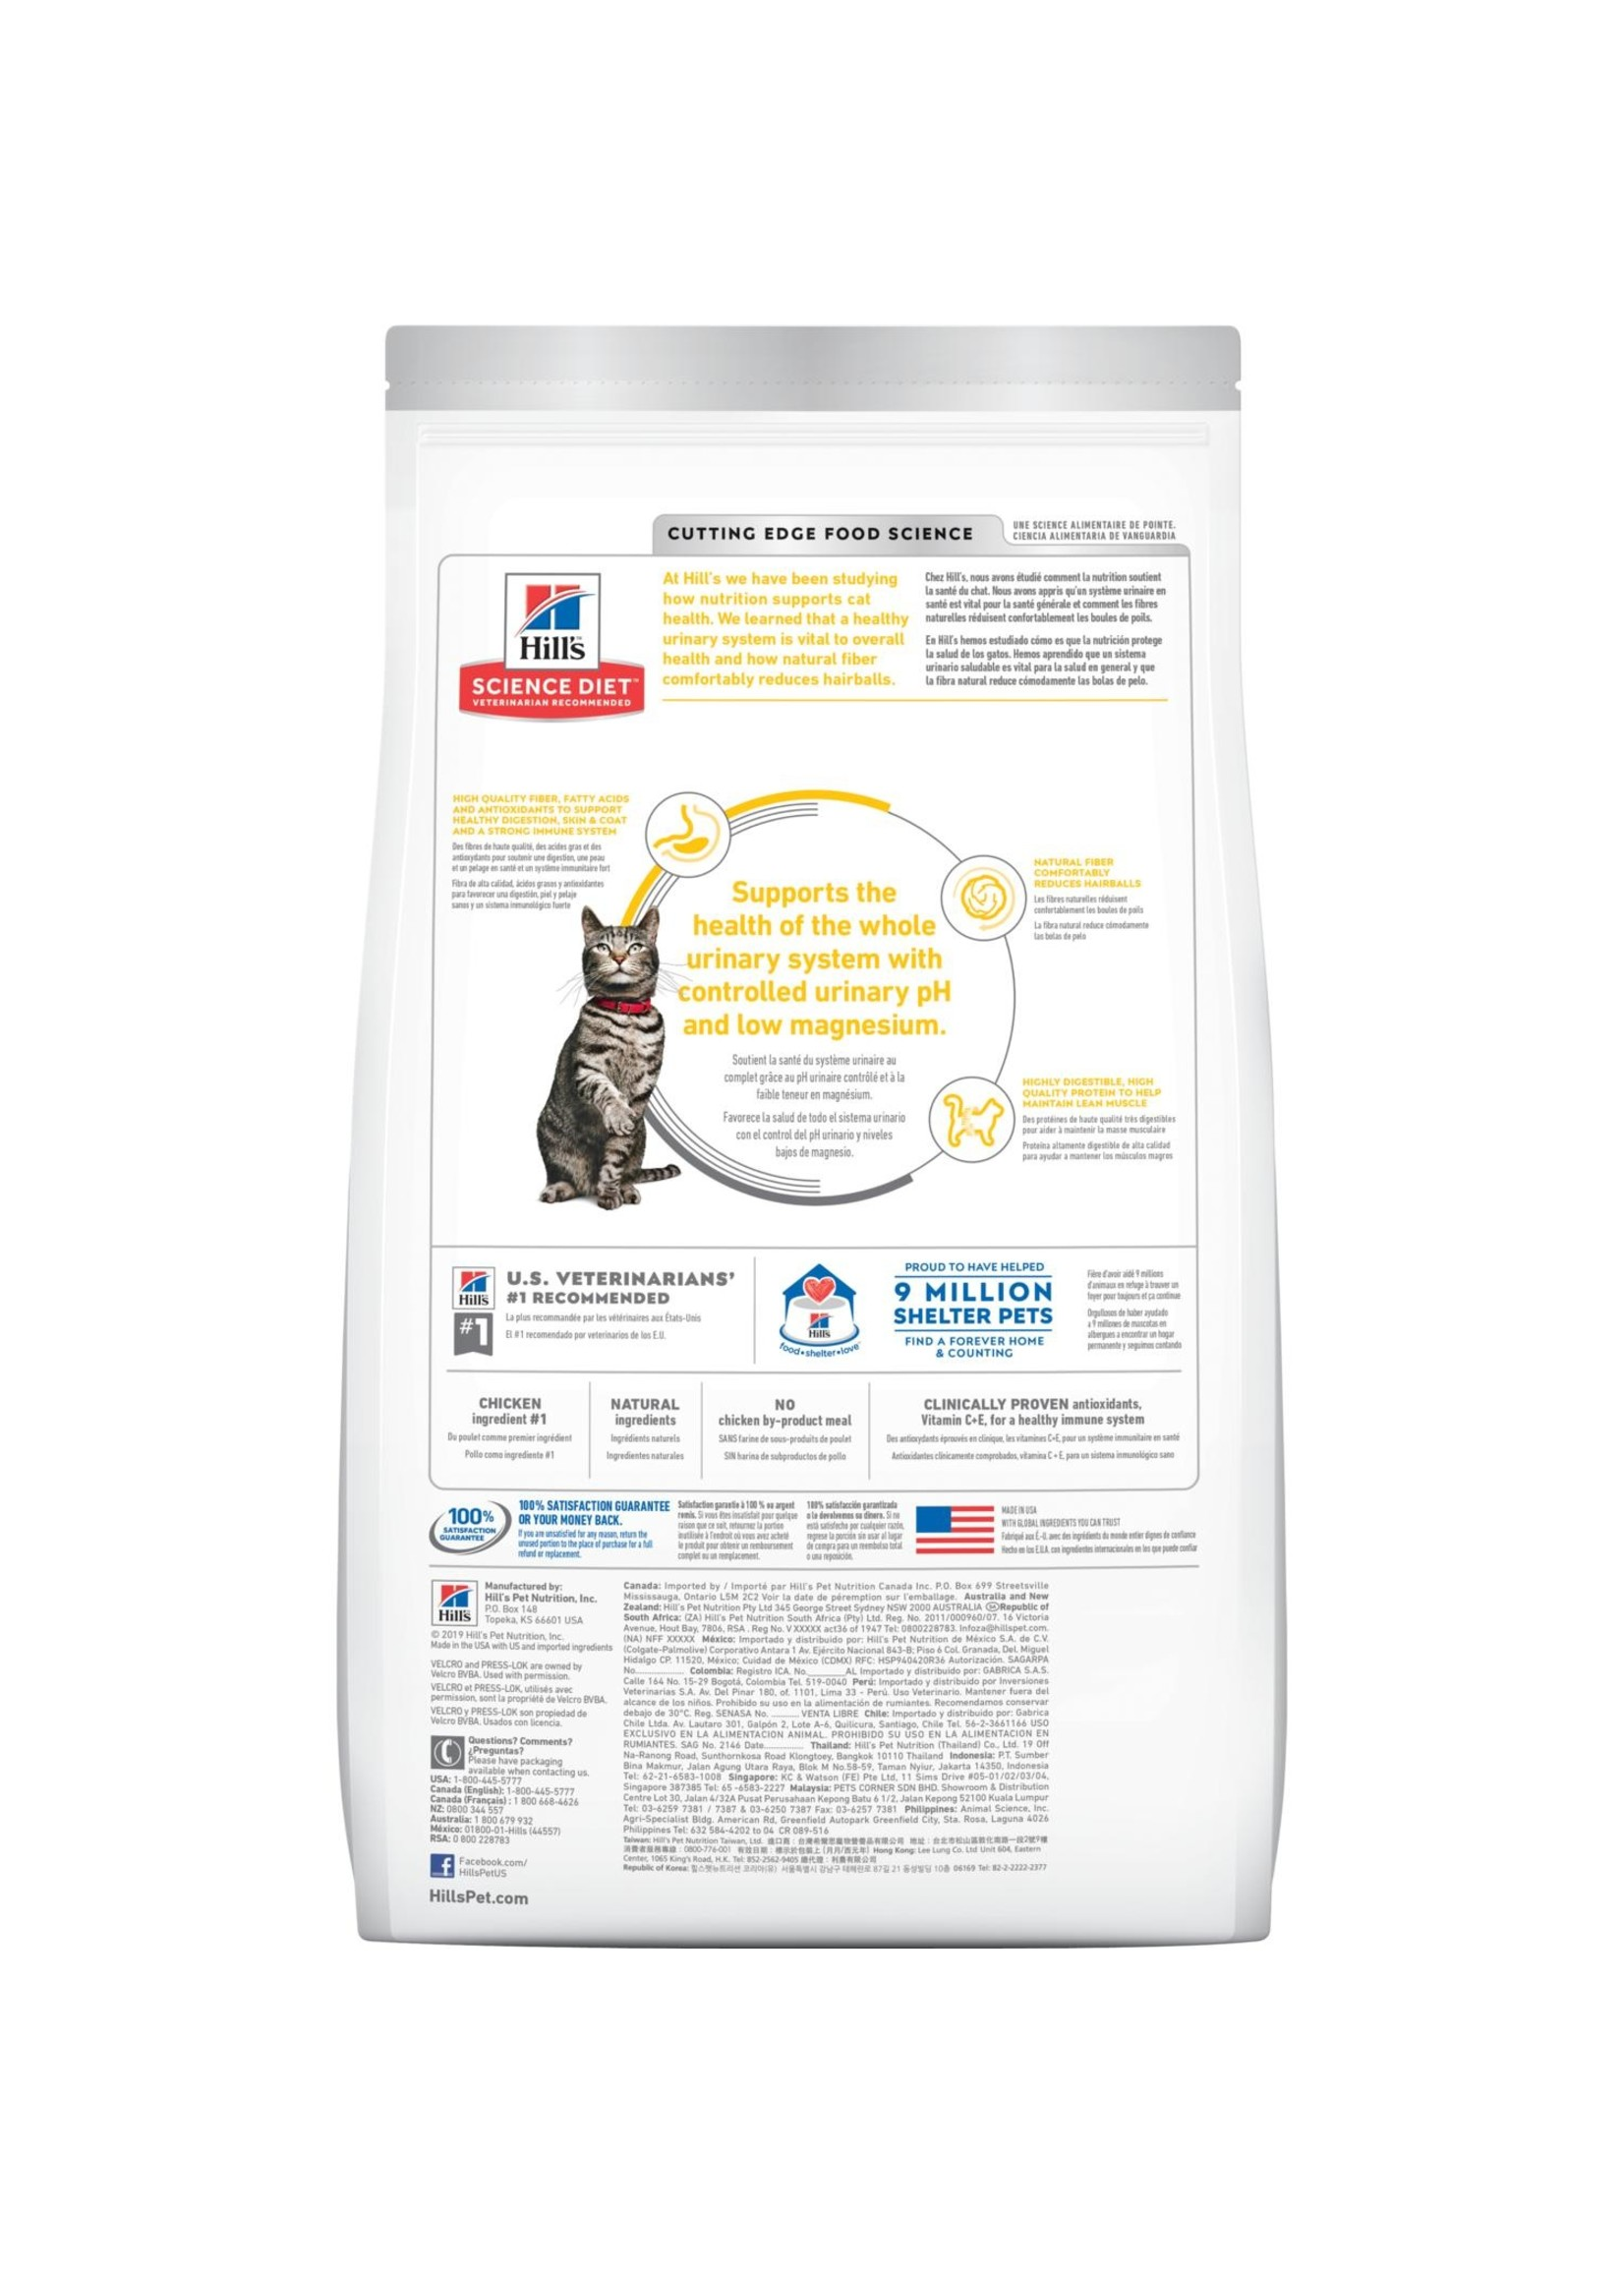 Hill's Science Diet Hill's Science Diet Adult Urinary & Hairball Control Cat Food, 7lb Bag